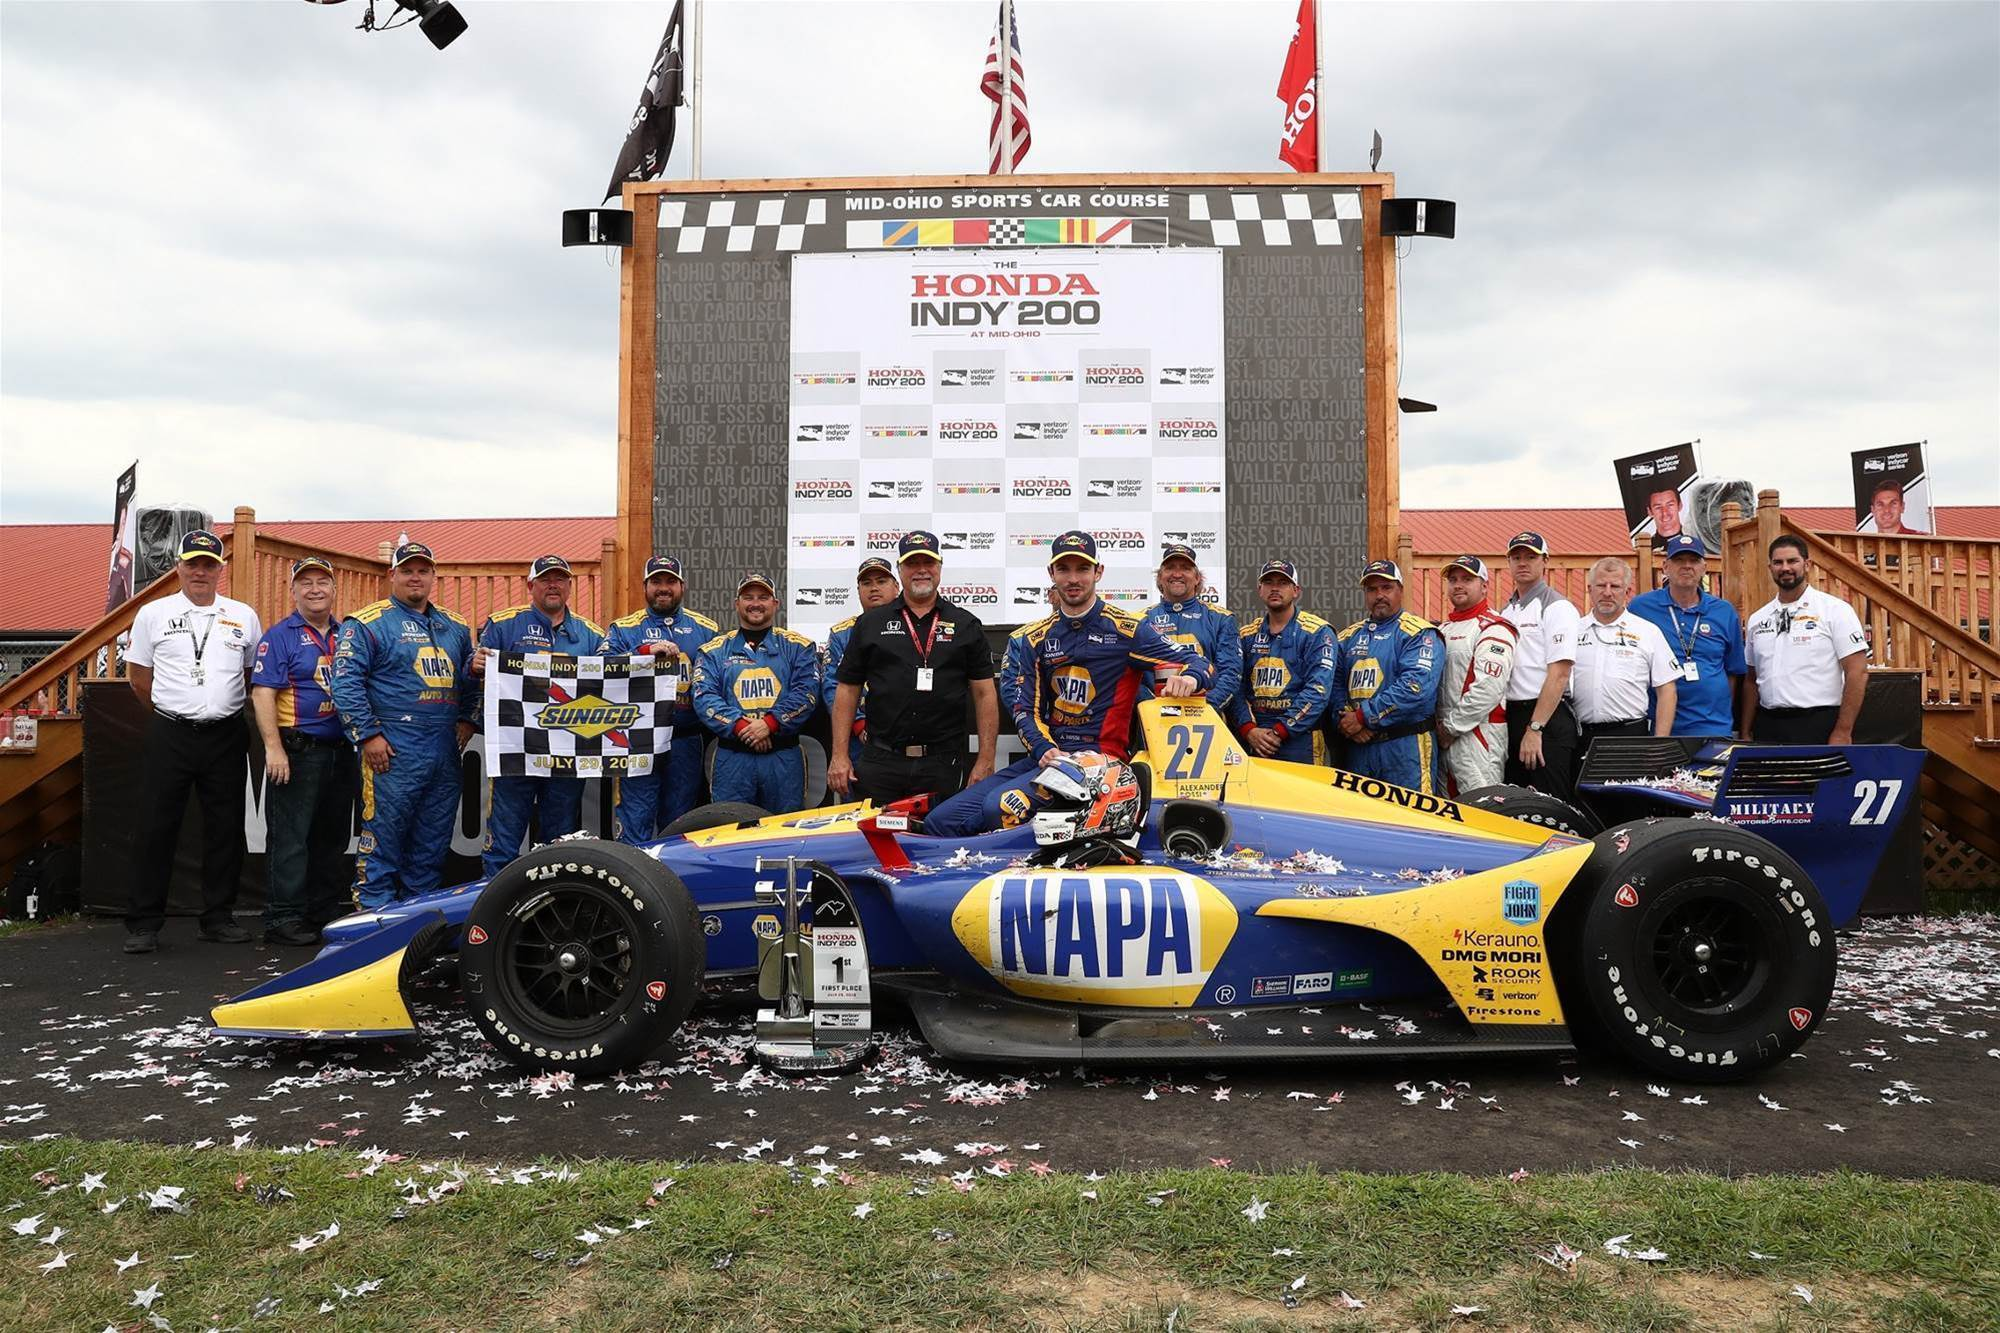 Pic Gallery: Mid Ohio Indycars